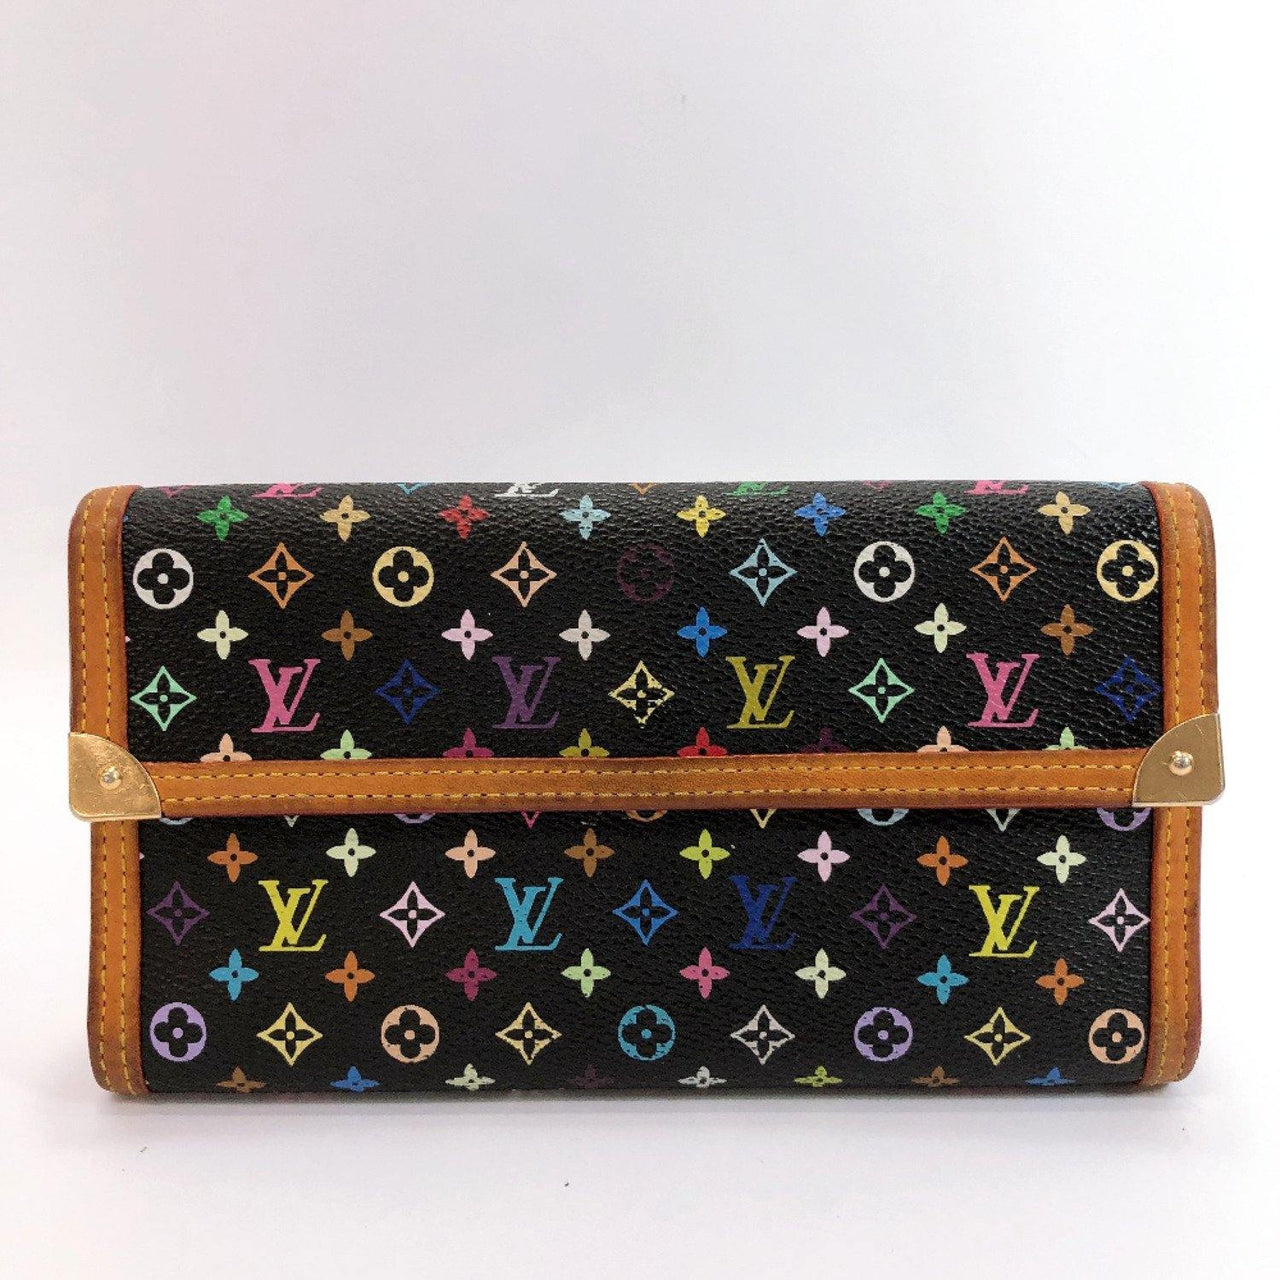 LOUIS VUITTON Tri-fold wallet M92658 Porte Tresor International Monogram multicolor black Multi Women Used - JP-BRANDS.com